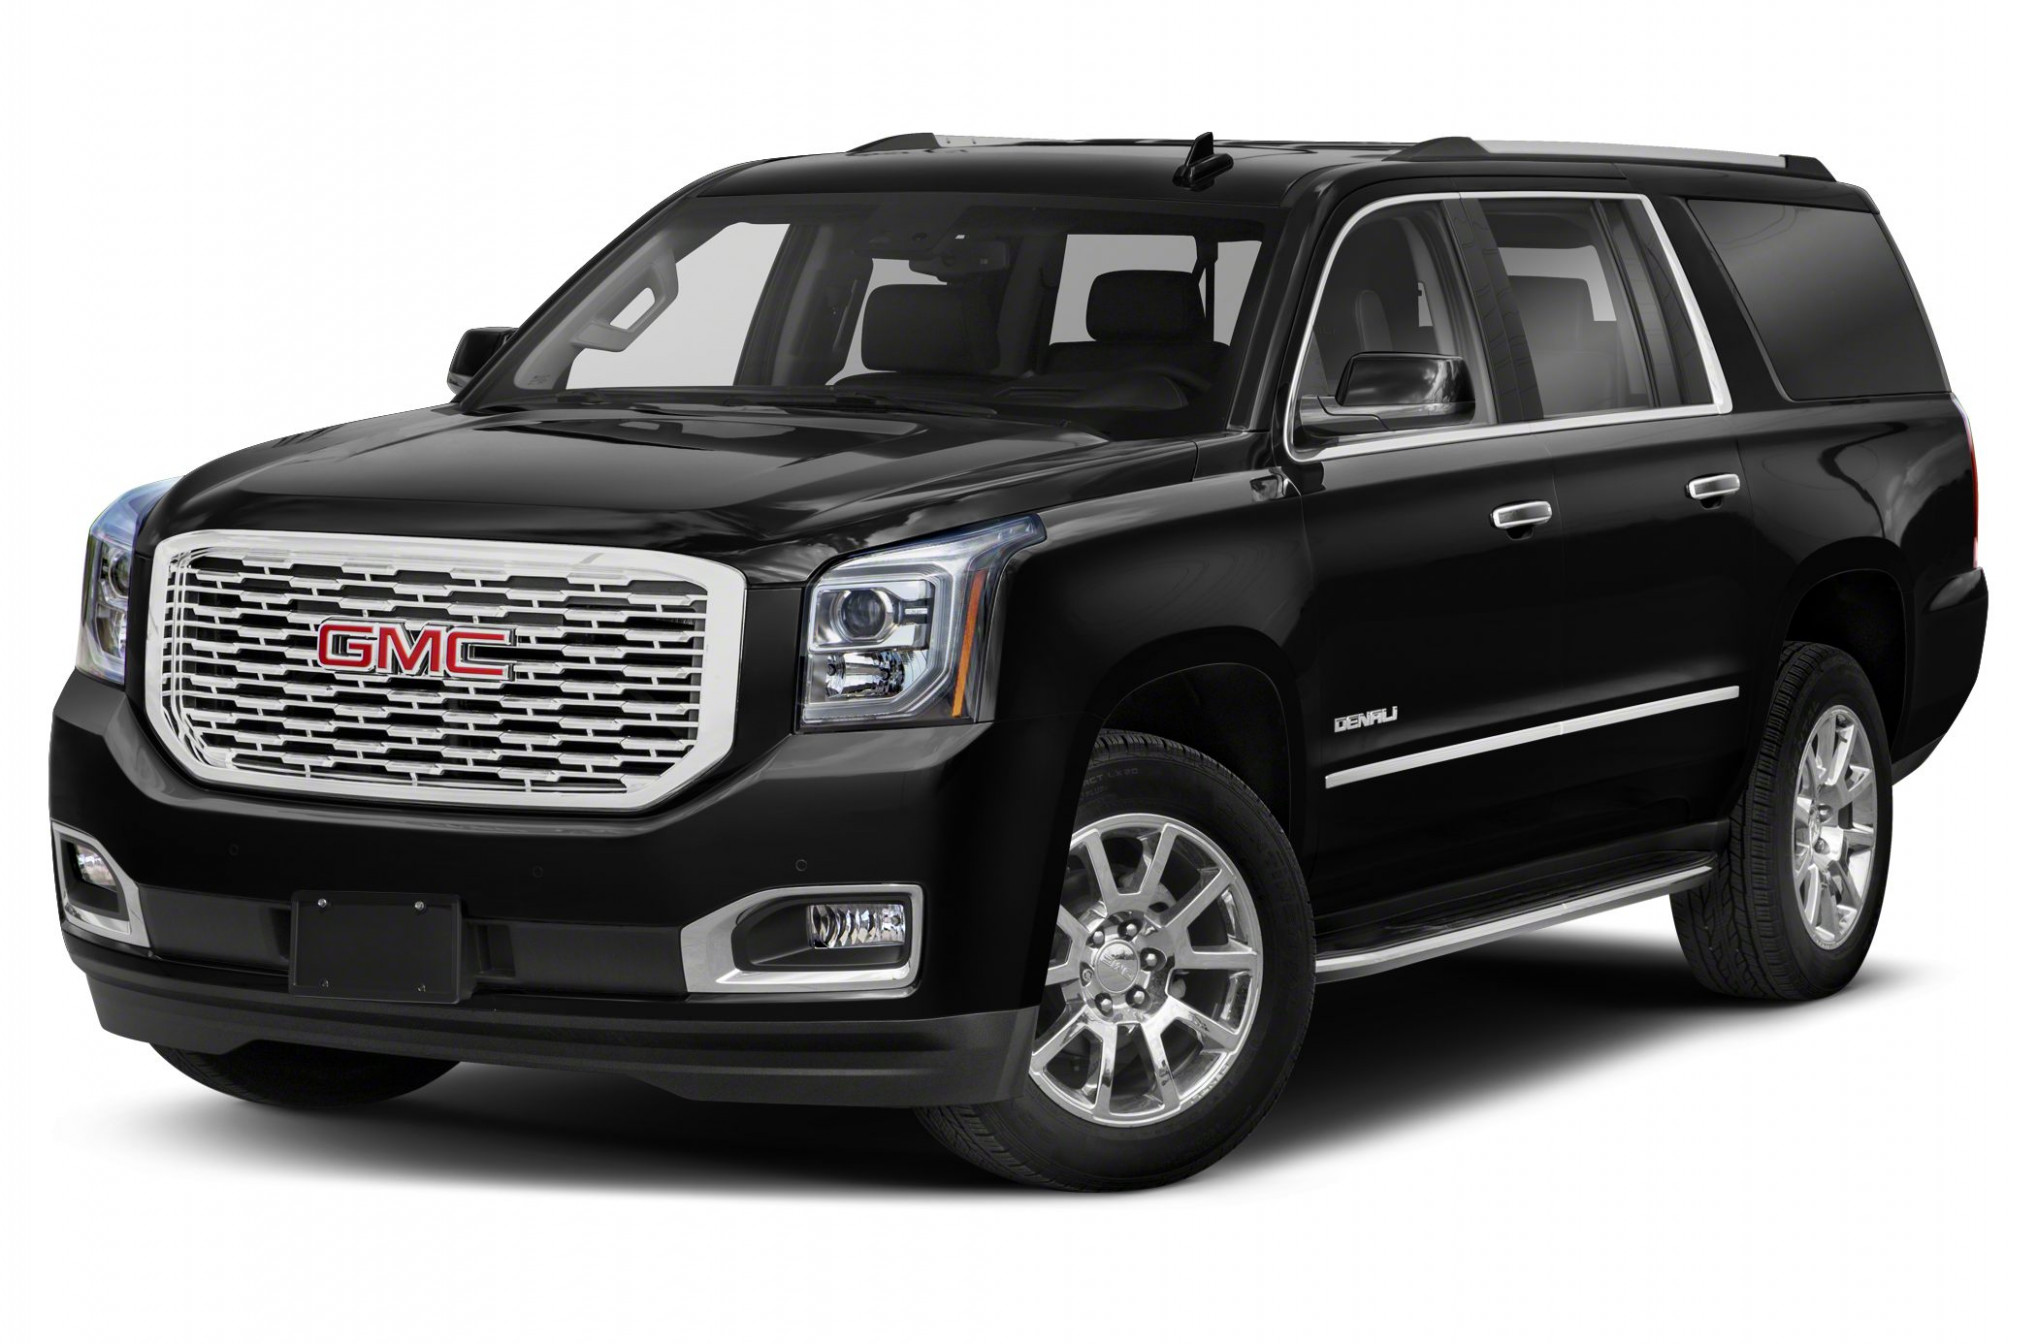 8 GMC Yukon XL Denali 8x8 Pictures - 2020 gmc yukon xl denali for sale